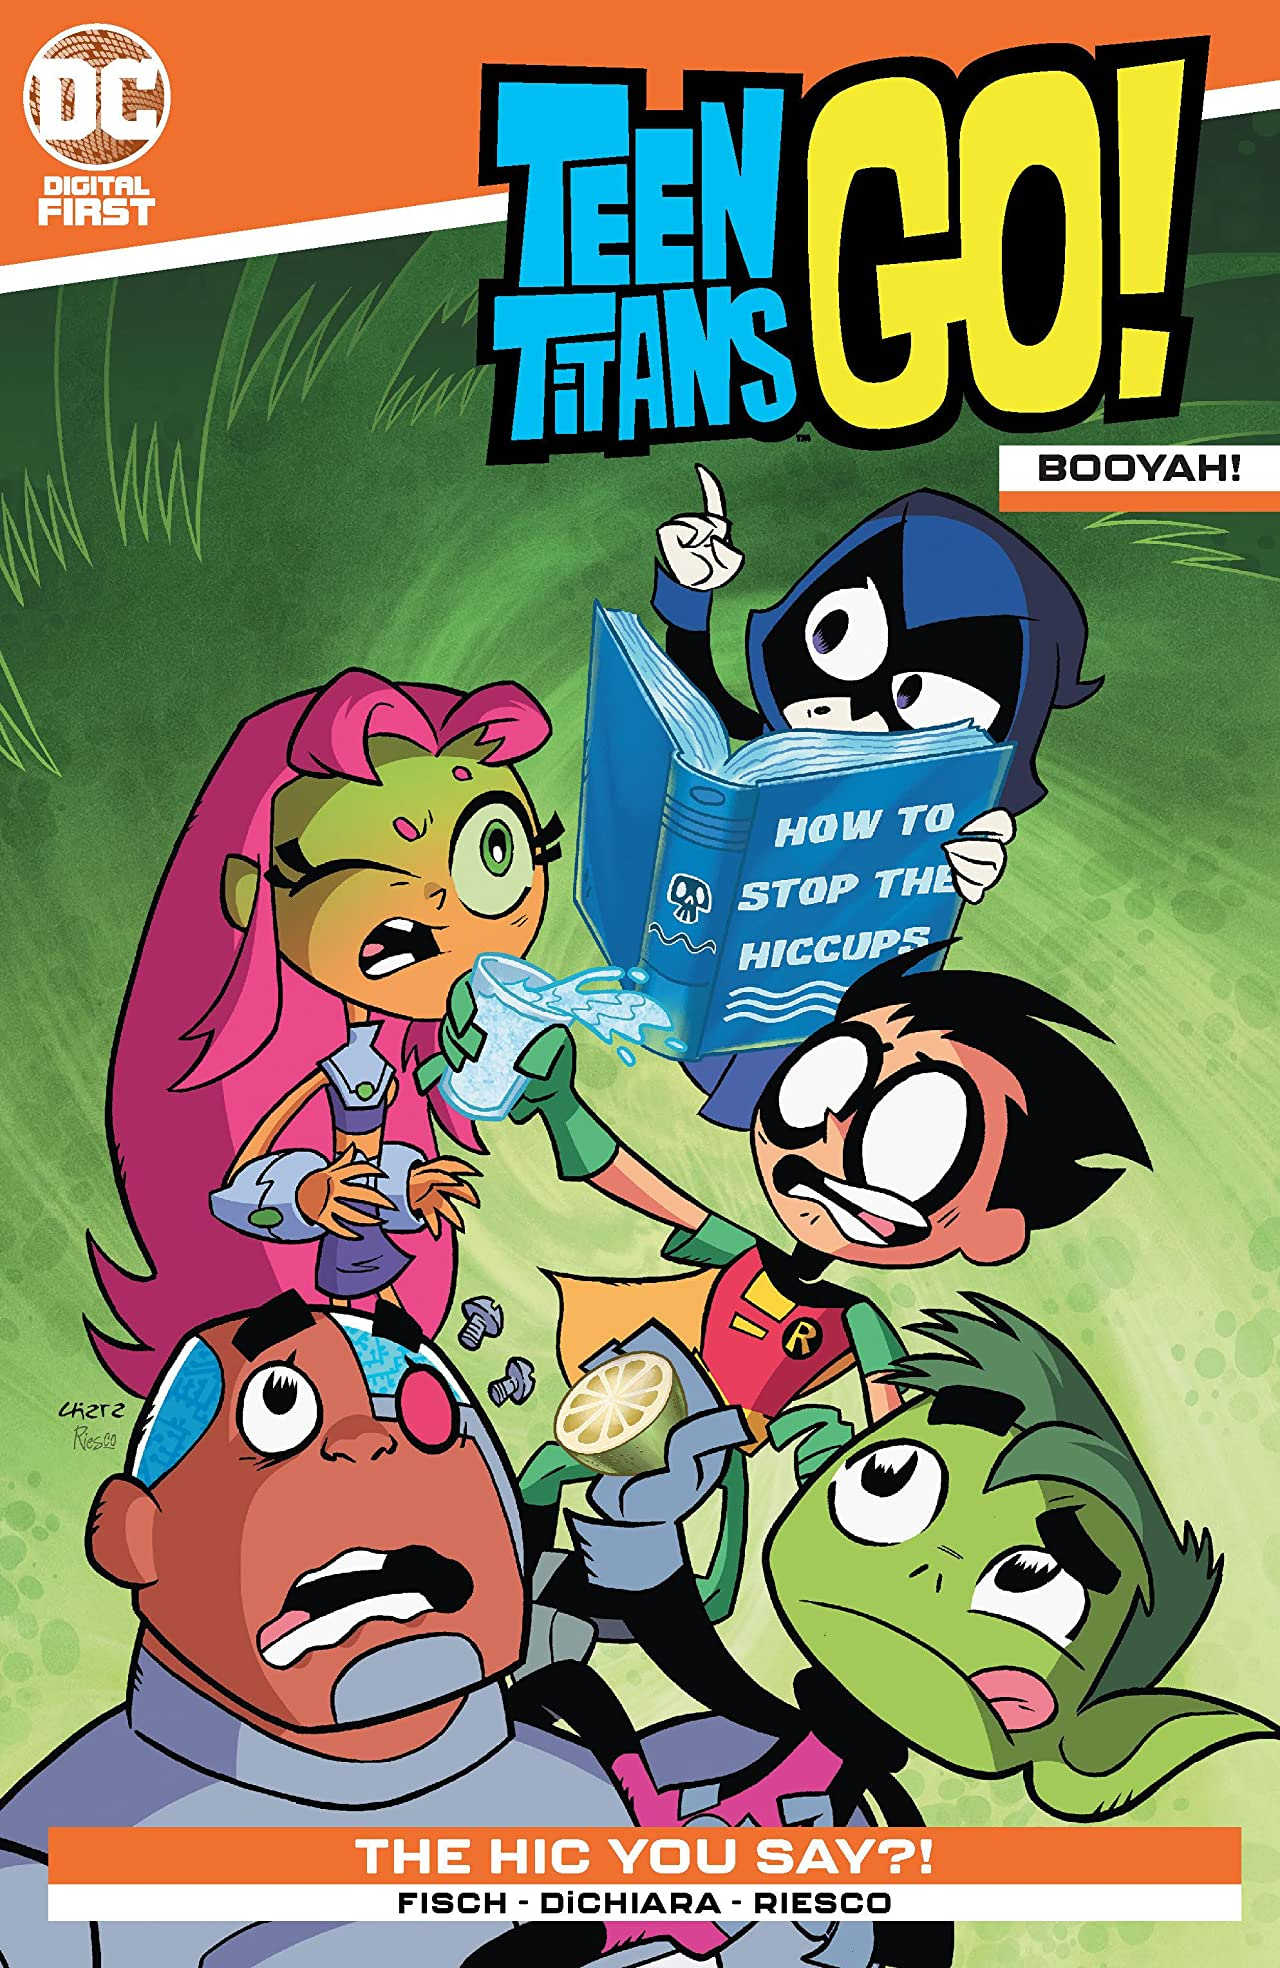 Teen Titans Go!: Booyah! Vol 1 1 (Digital)